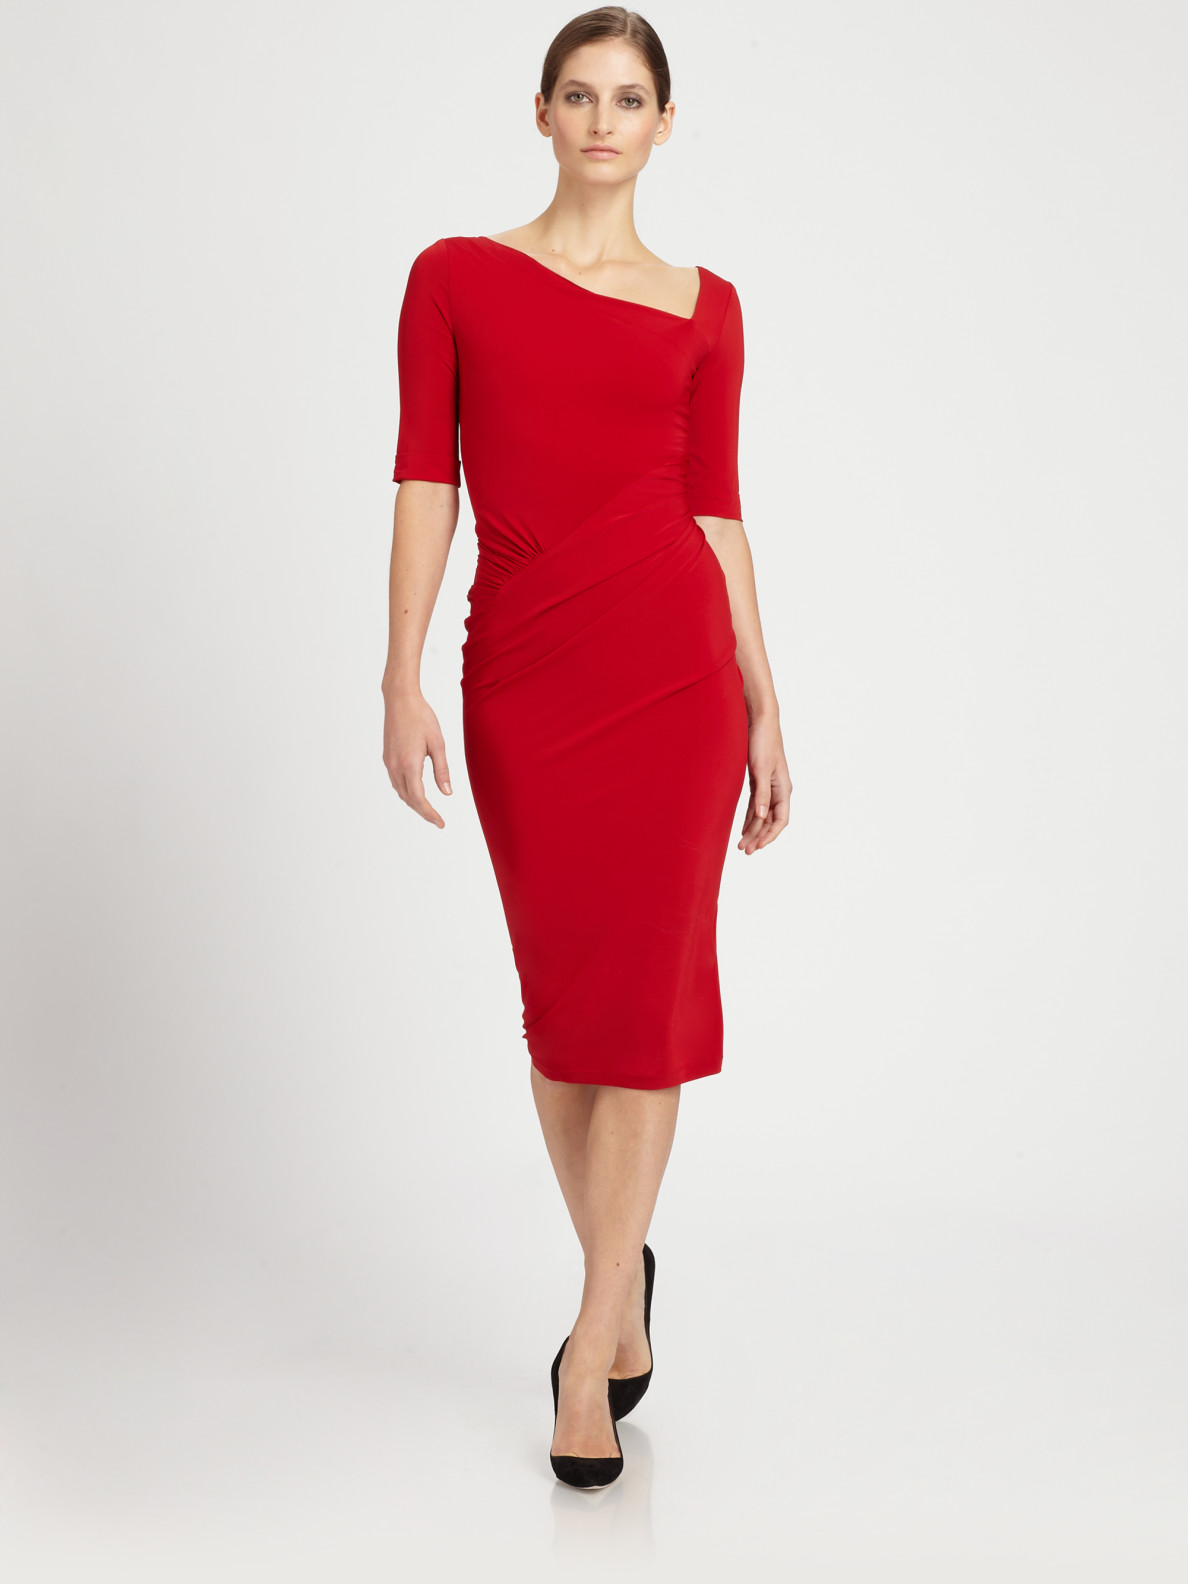 Donna karan new york superfine jersey dress in red lyst for Donna karen new york